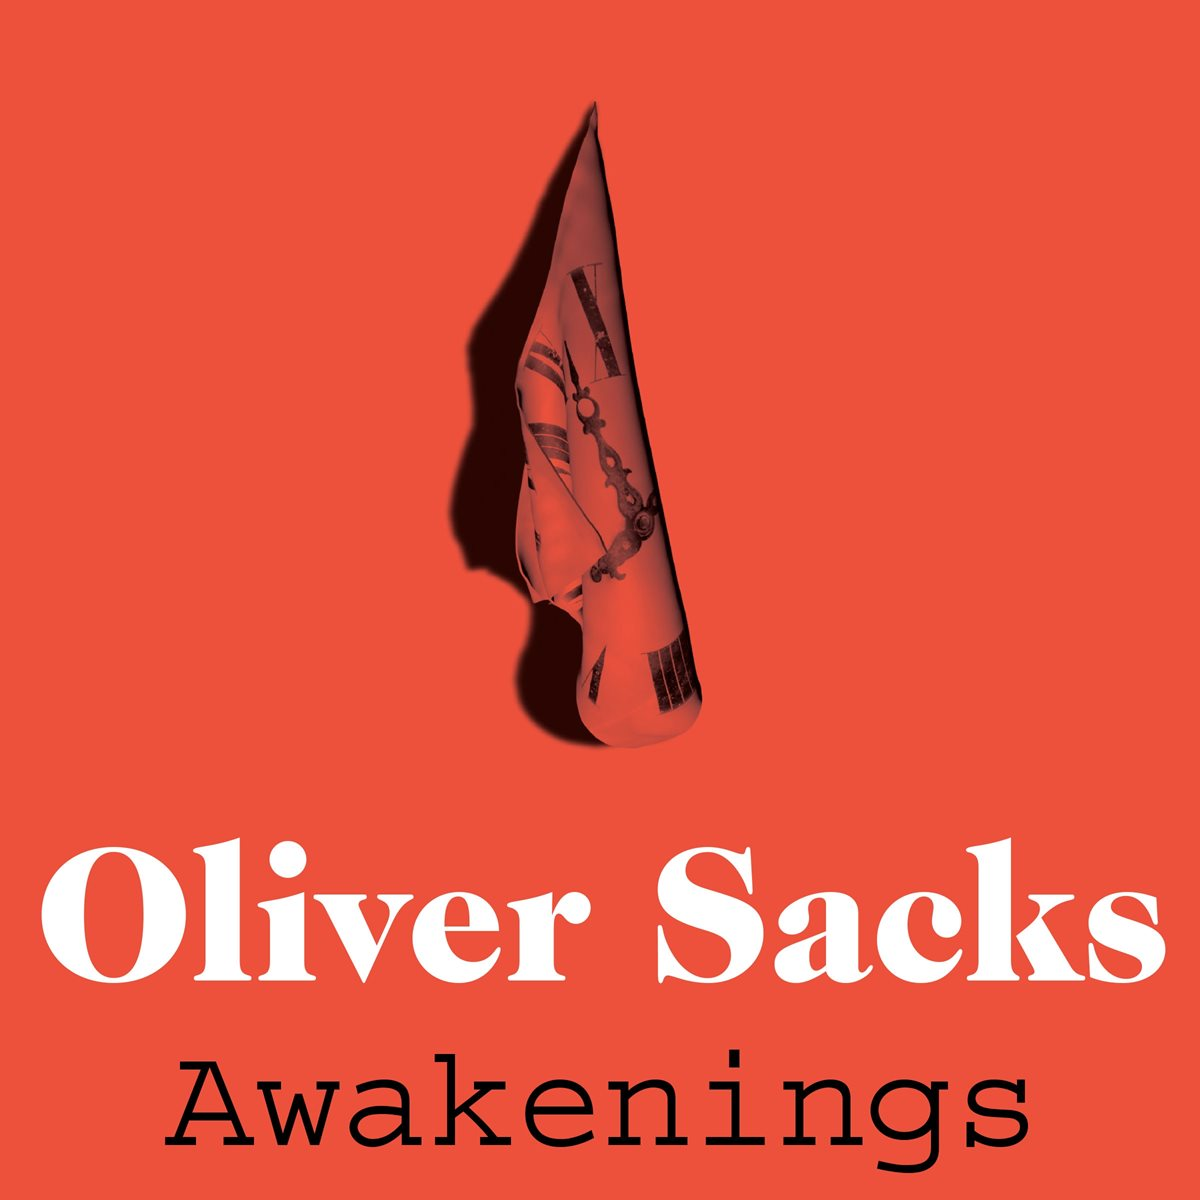 oliver sacks awakening Neurologist oliver sacks, who wrote the book awakenings and was portrayed by  robin williams in the 1990 movie of the same name, died.